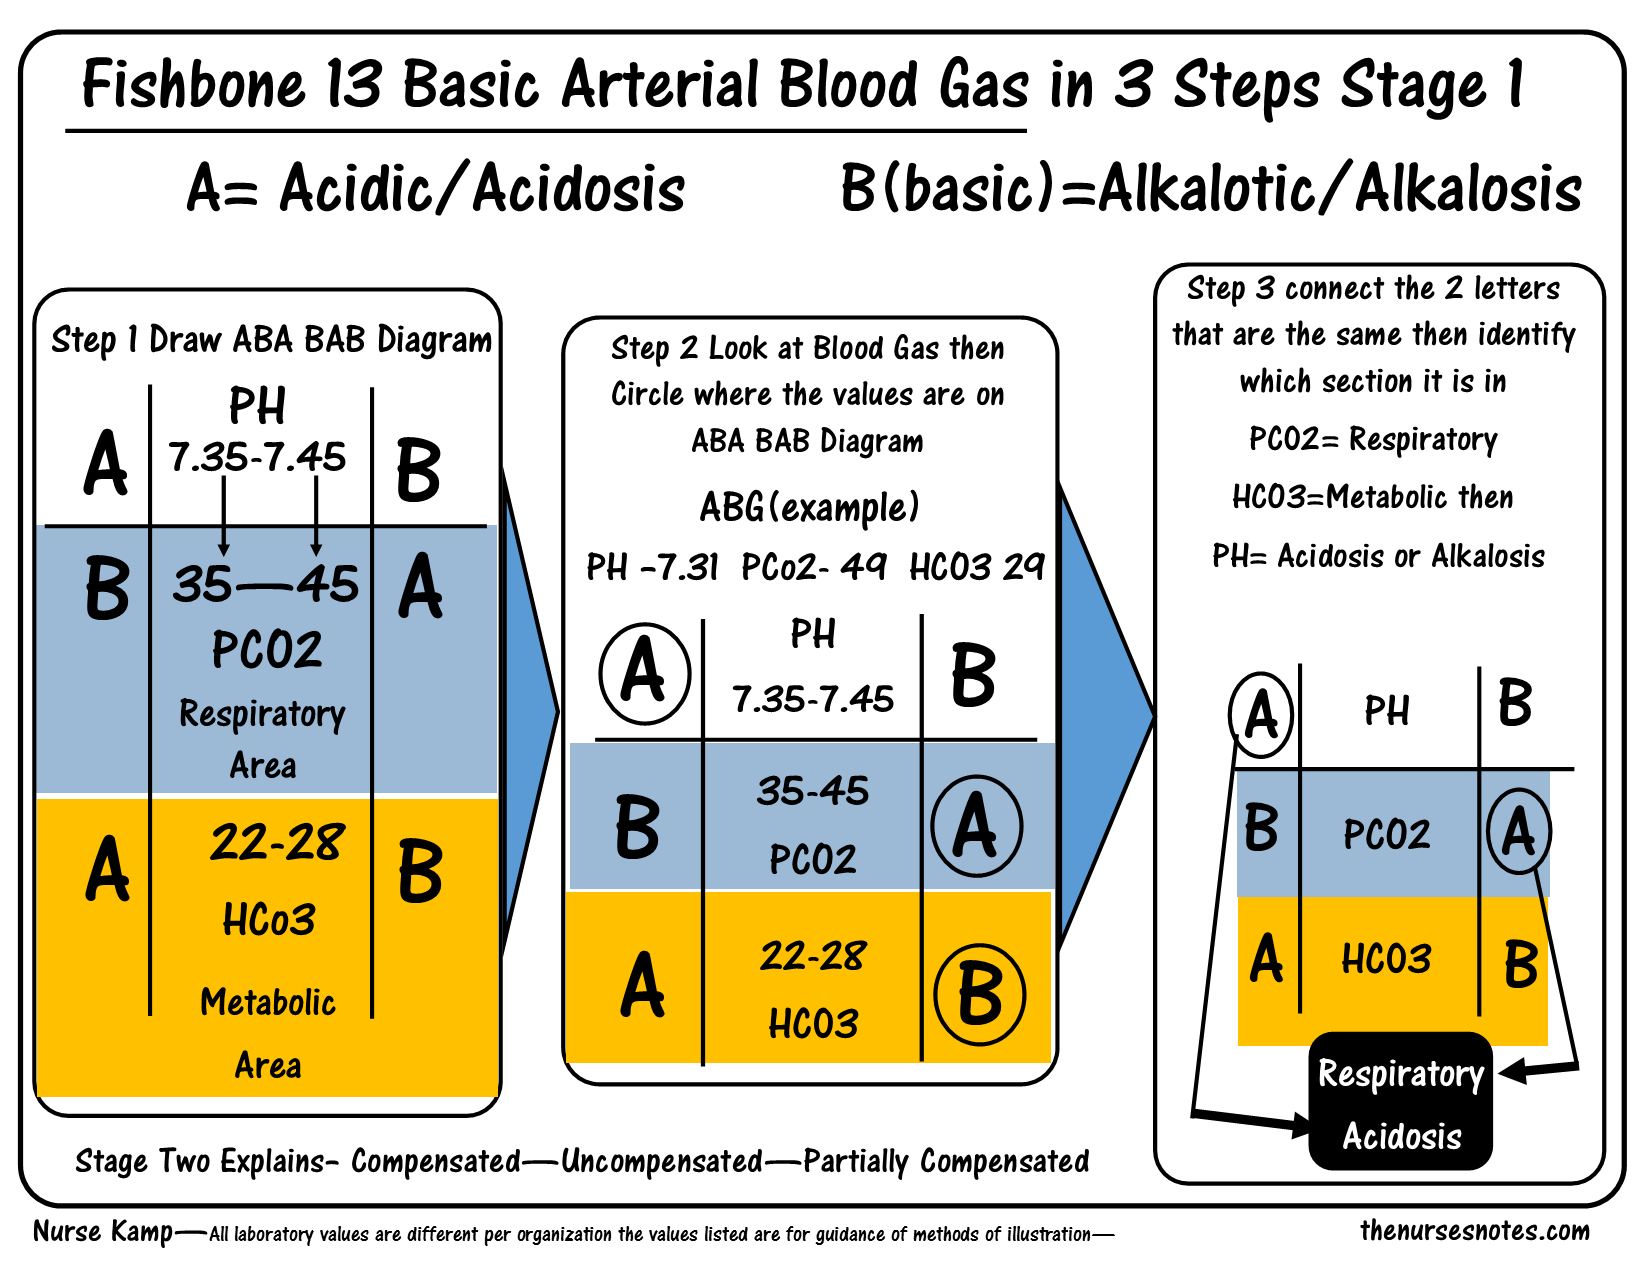 hepatic fishbone diagram lab values valve timing for 4 stroke diesel engine abg this is the 13th in series of